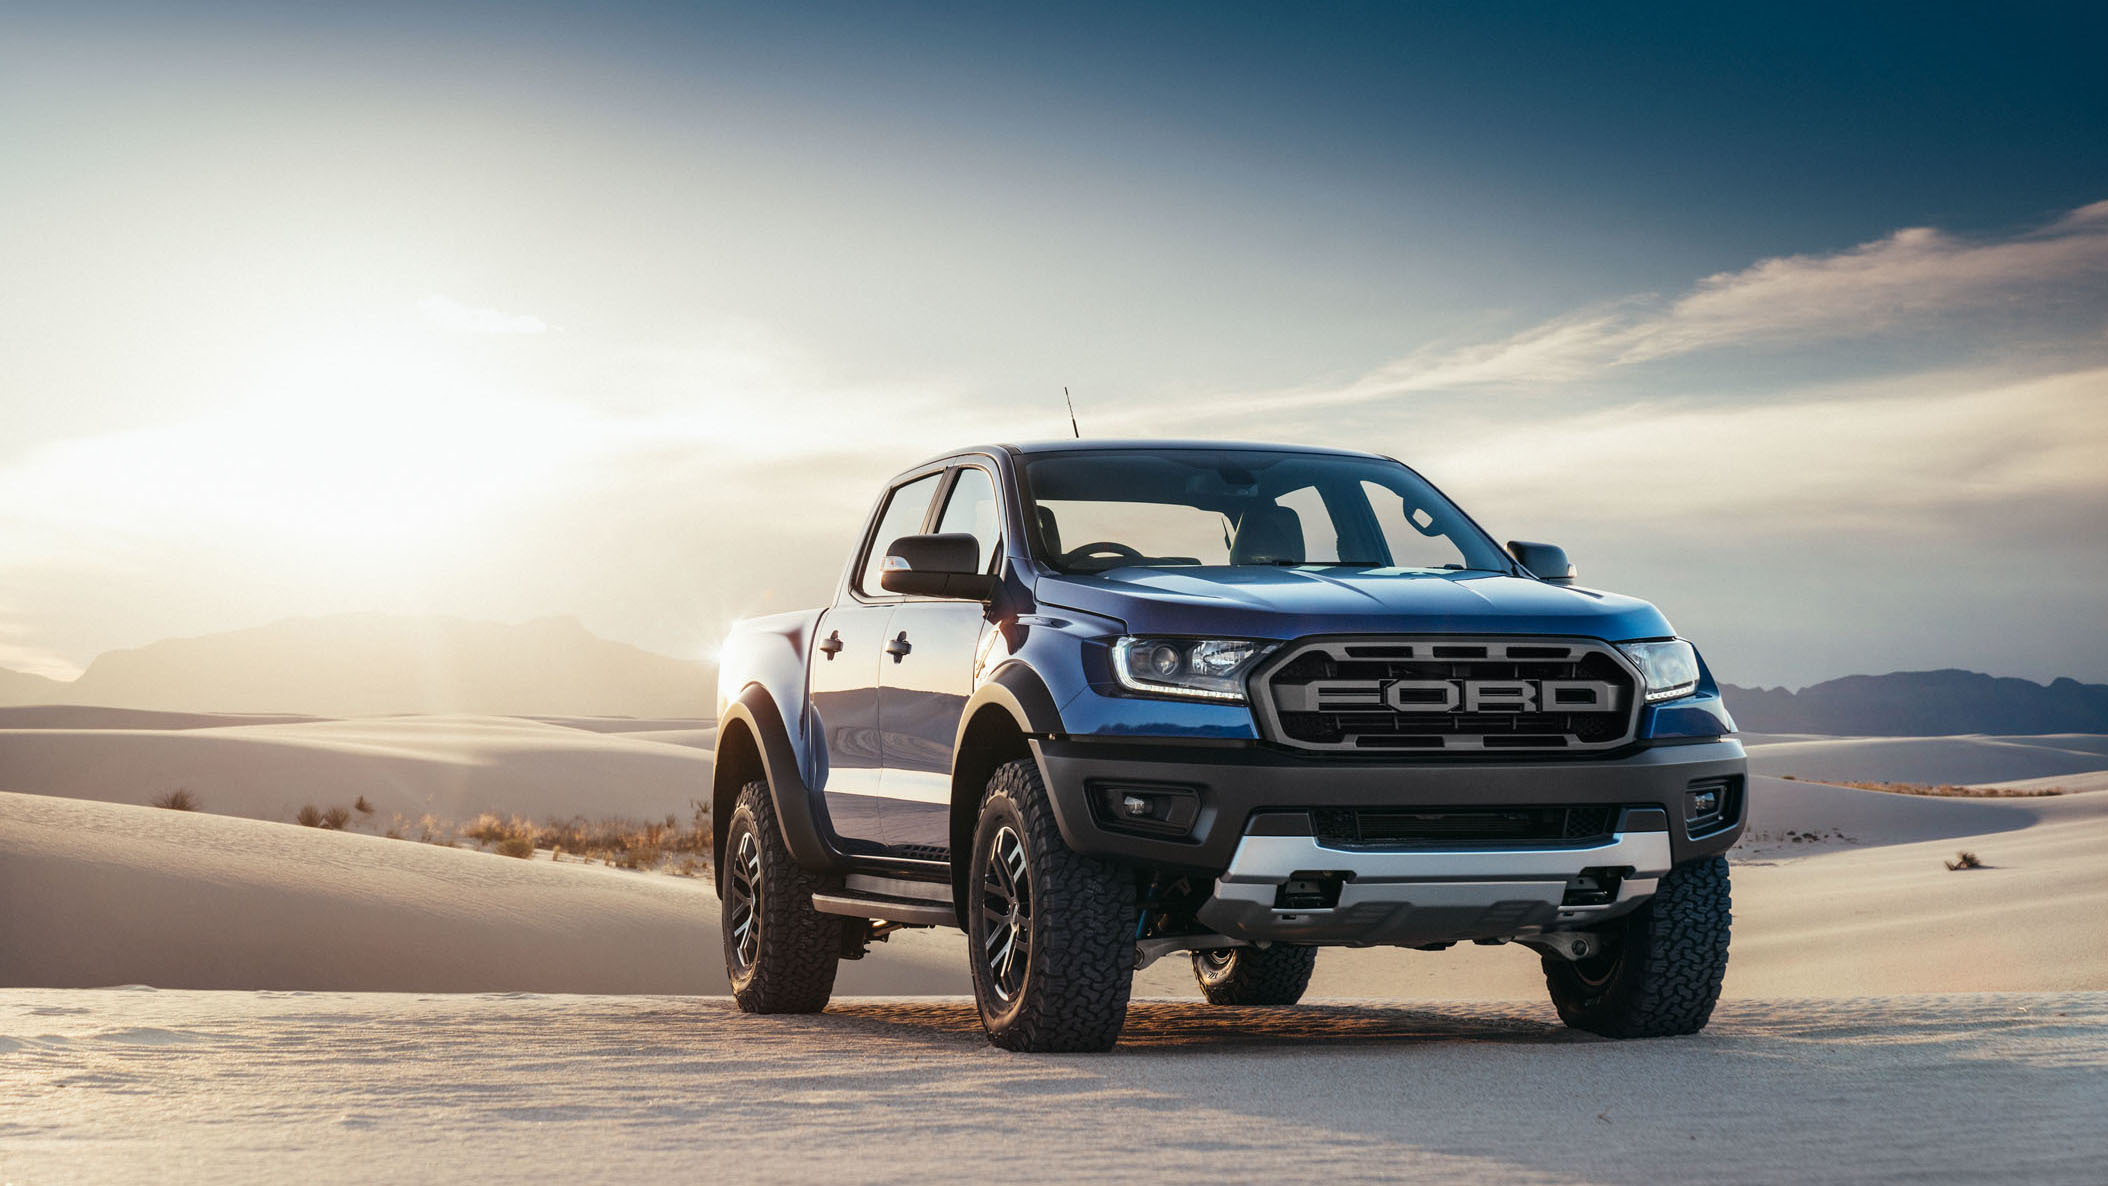 2019 ford ranger raptor pictures photos wallpapers and. Black Bedroom Furniture Sets. Home Design Ideas